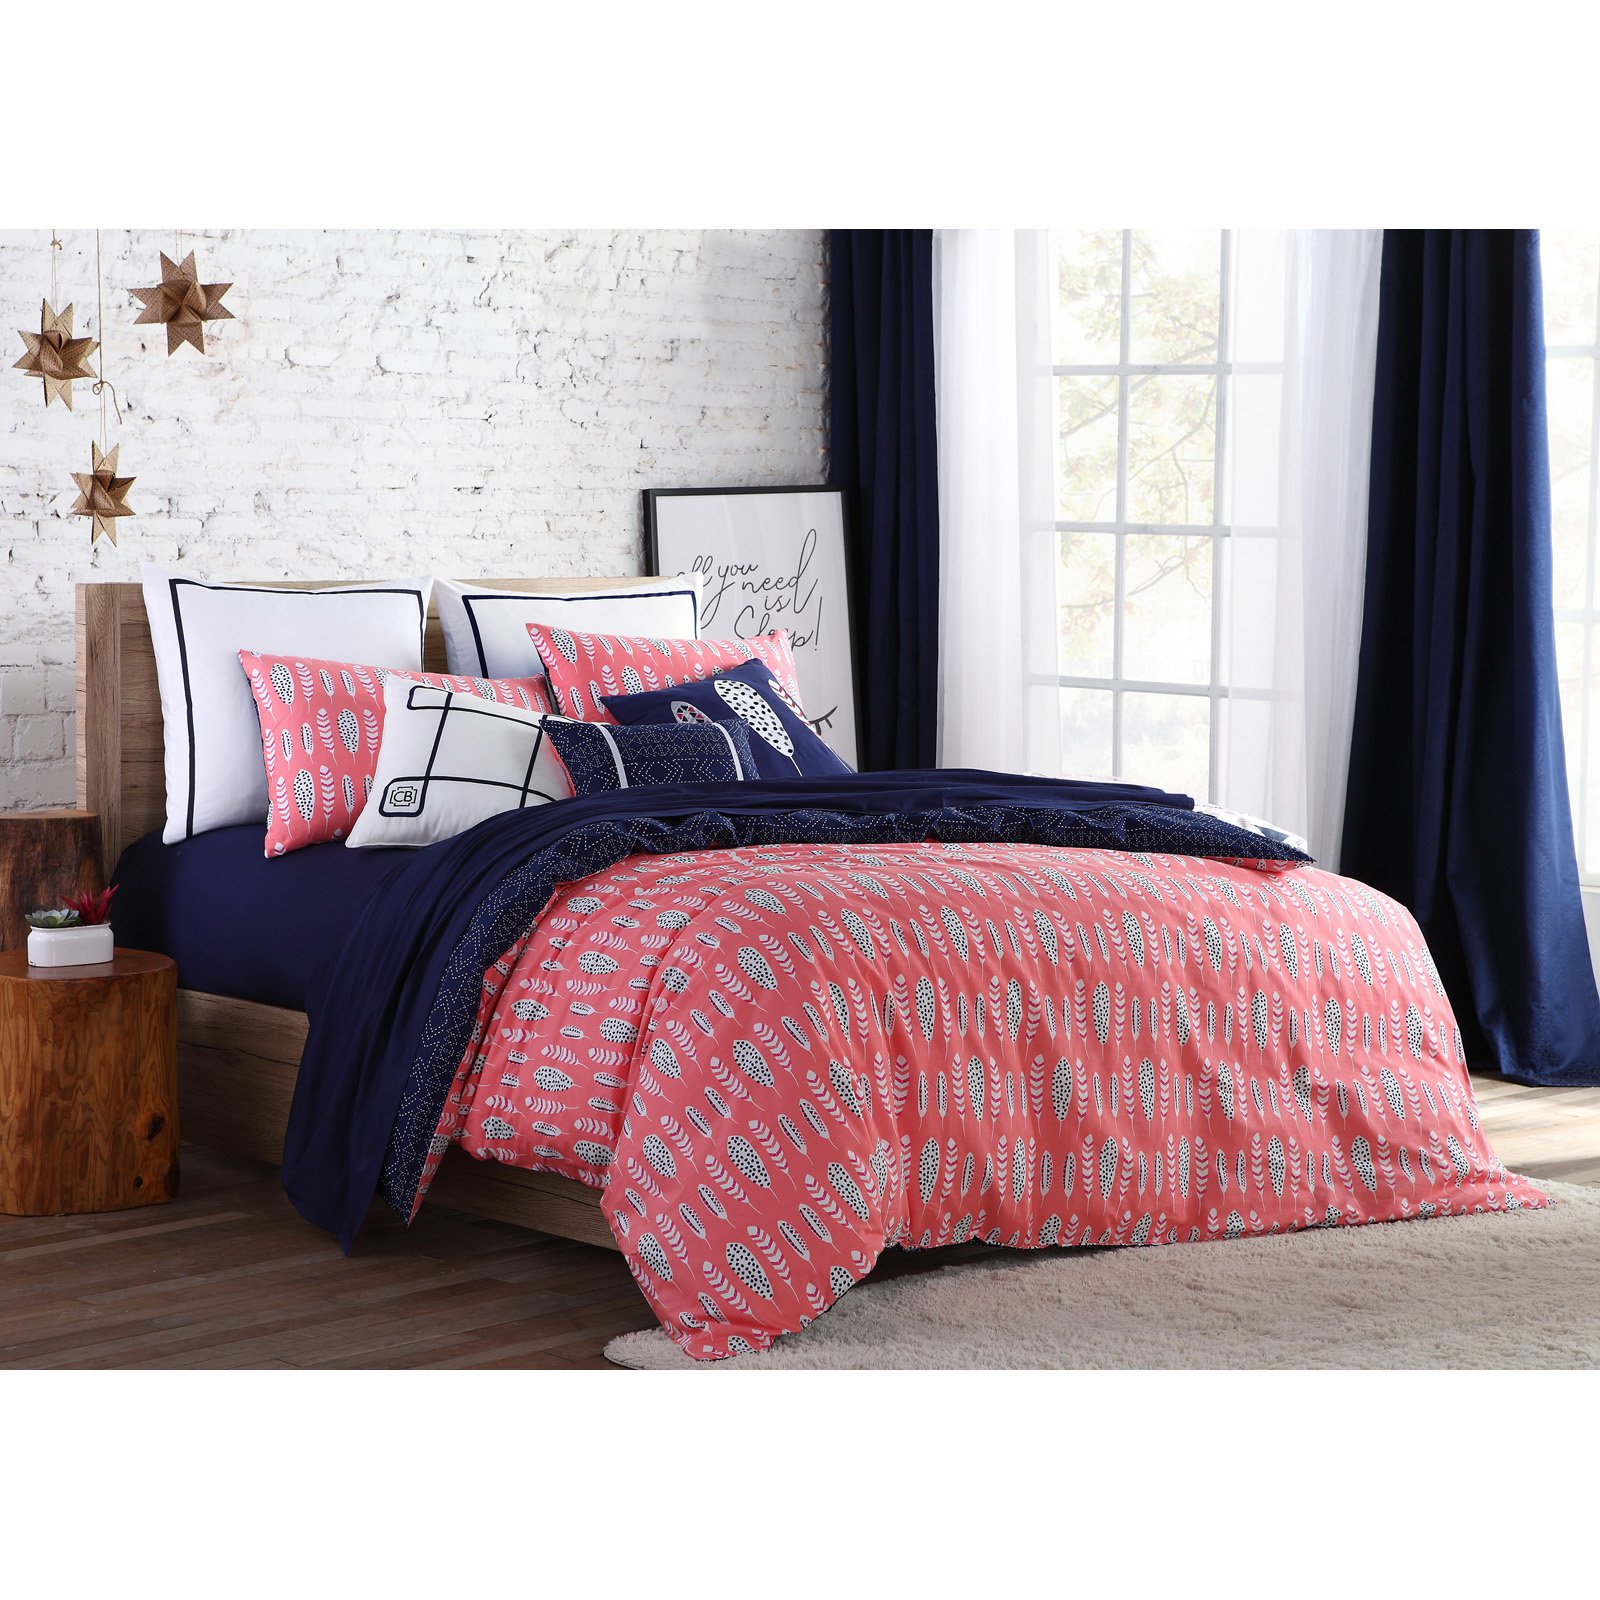 Clairebella Navajo 2/3 Piece 200 Thread Count 100% Cotton Reversible Duvet Cover Bedding Set, Shams Included